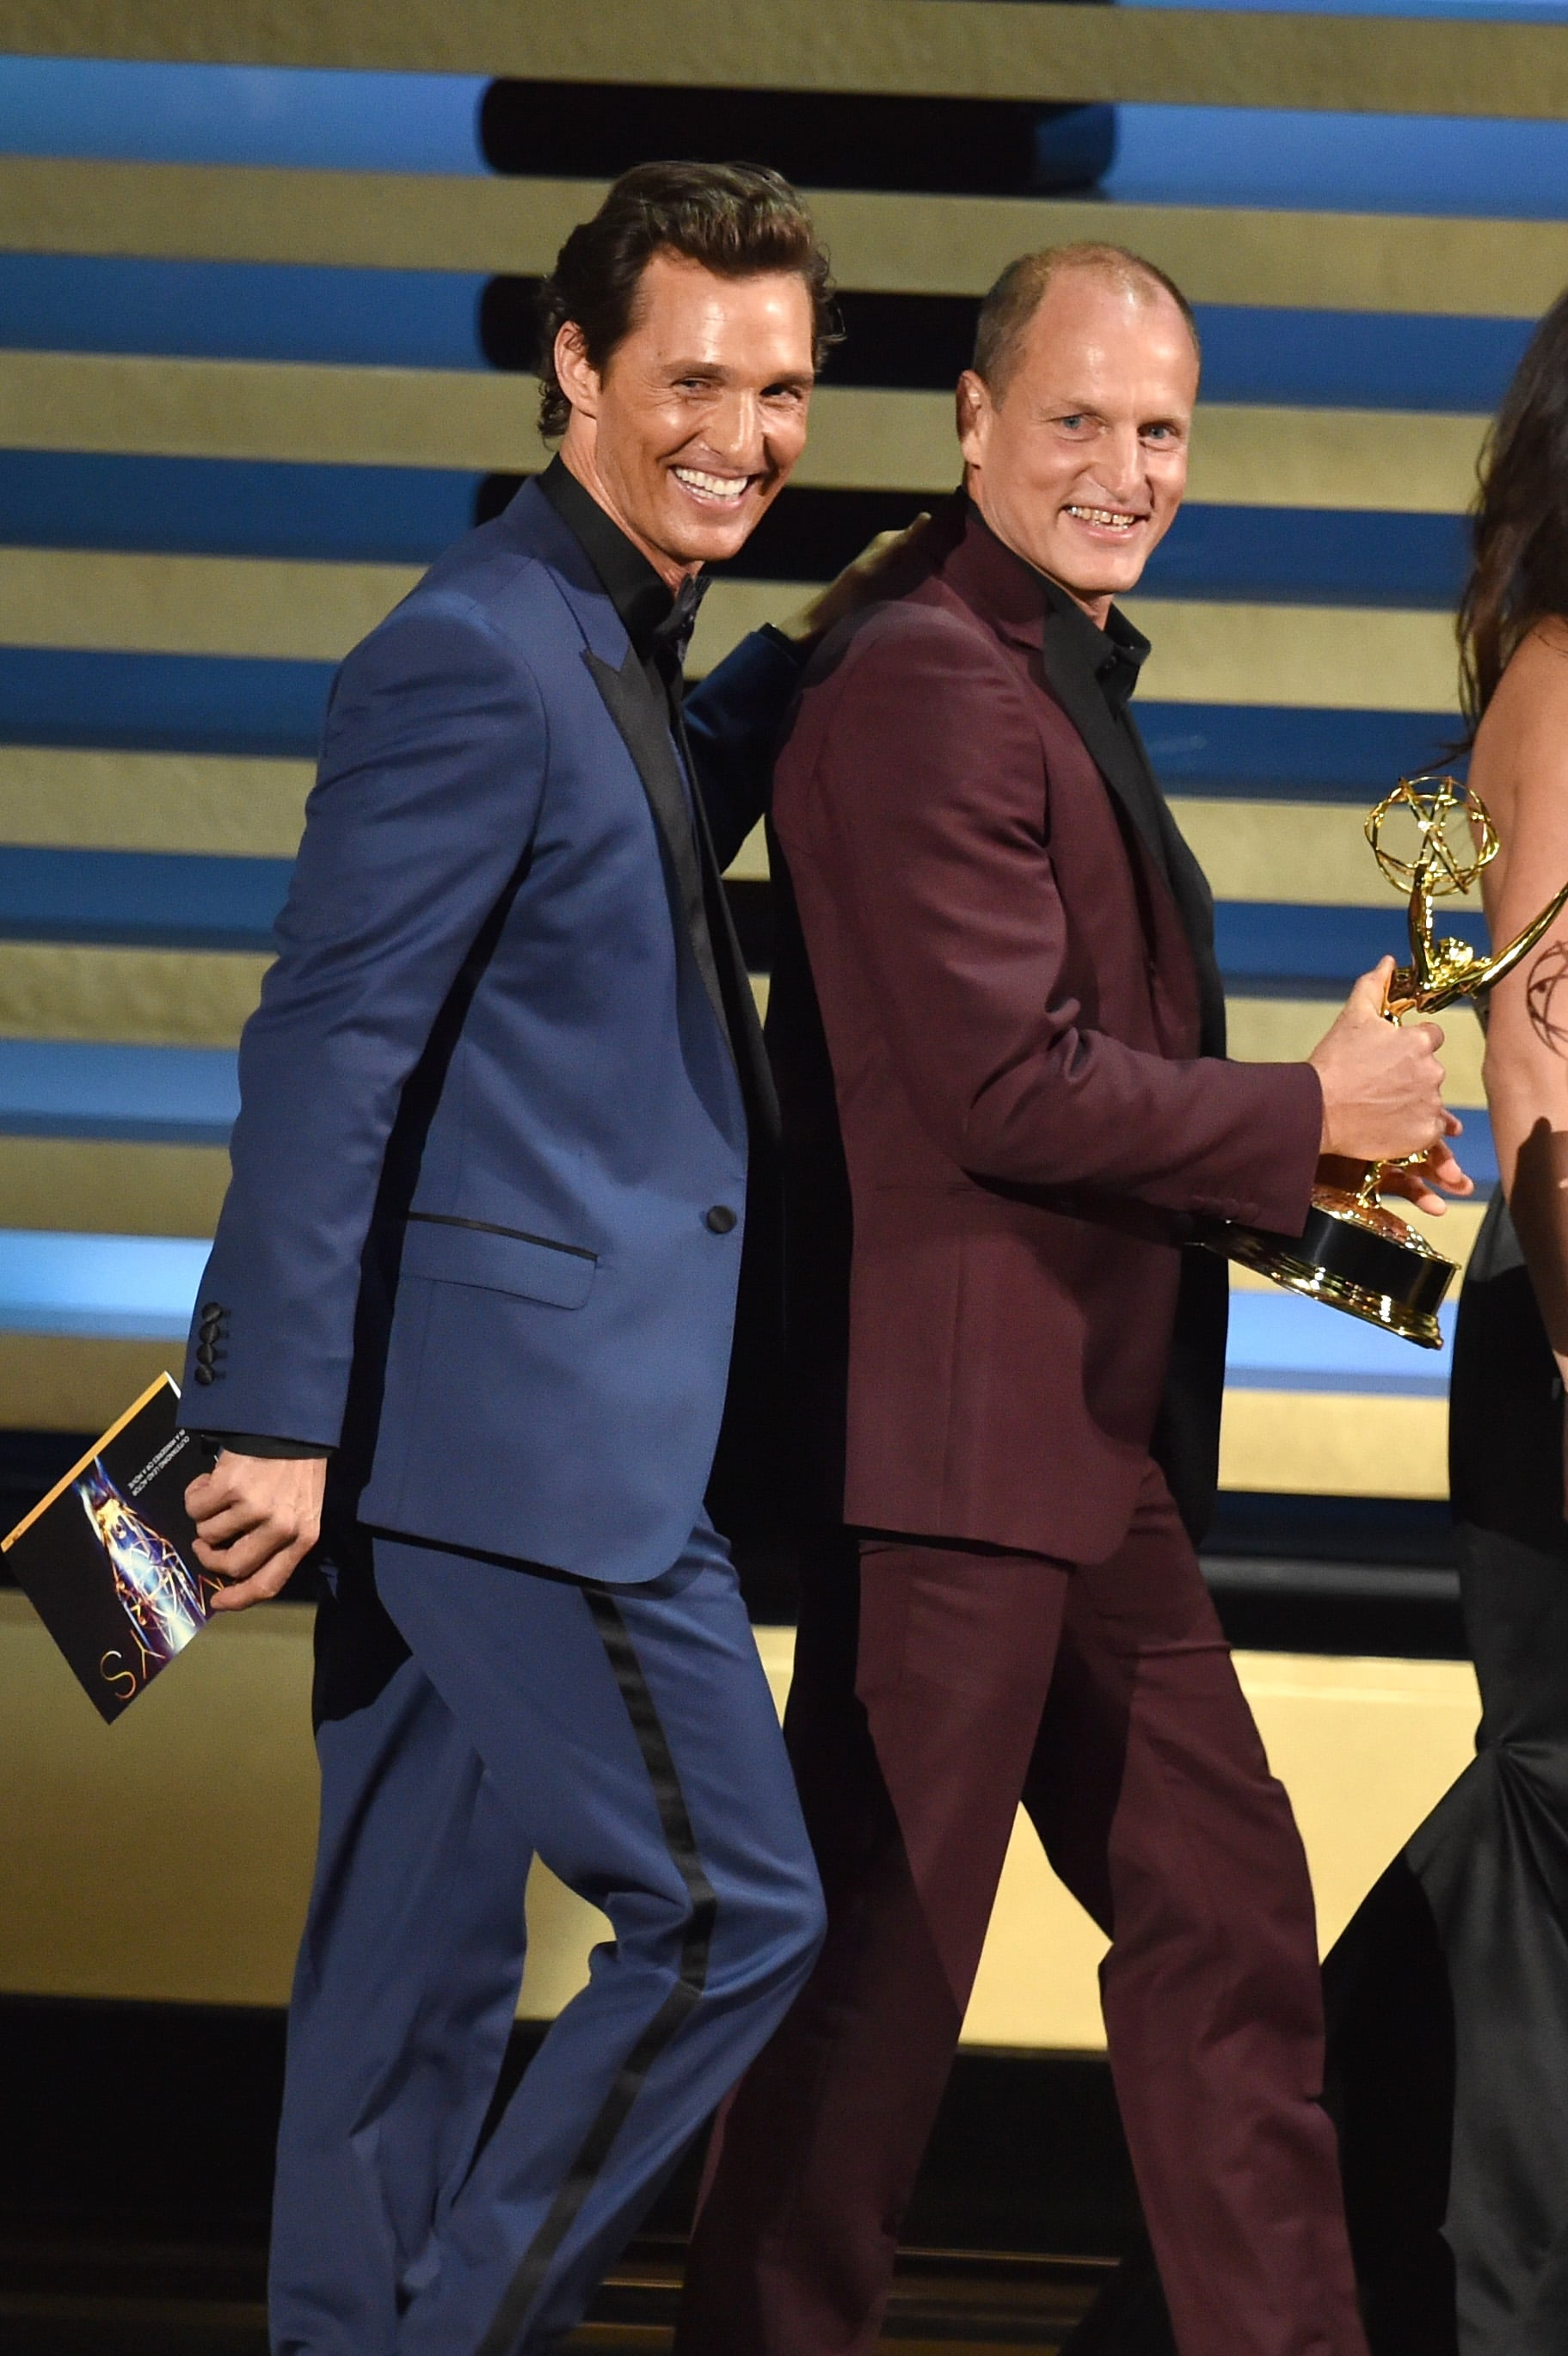 Matthew McConaughey and Woody Harrelson were in their comfort zone when they presented together.